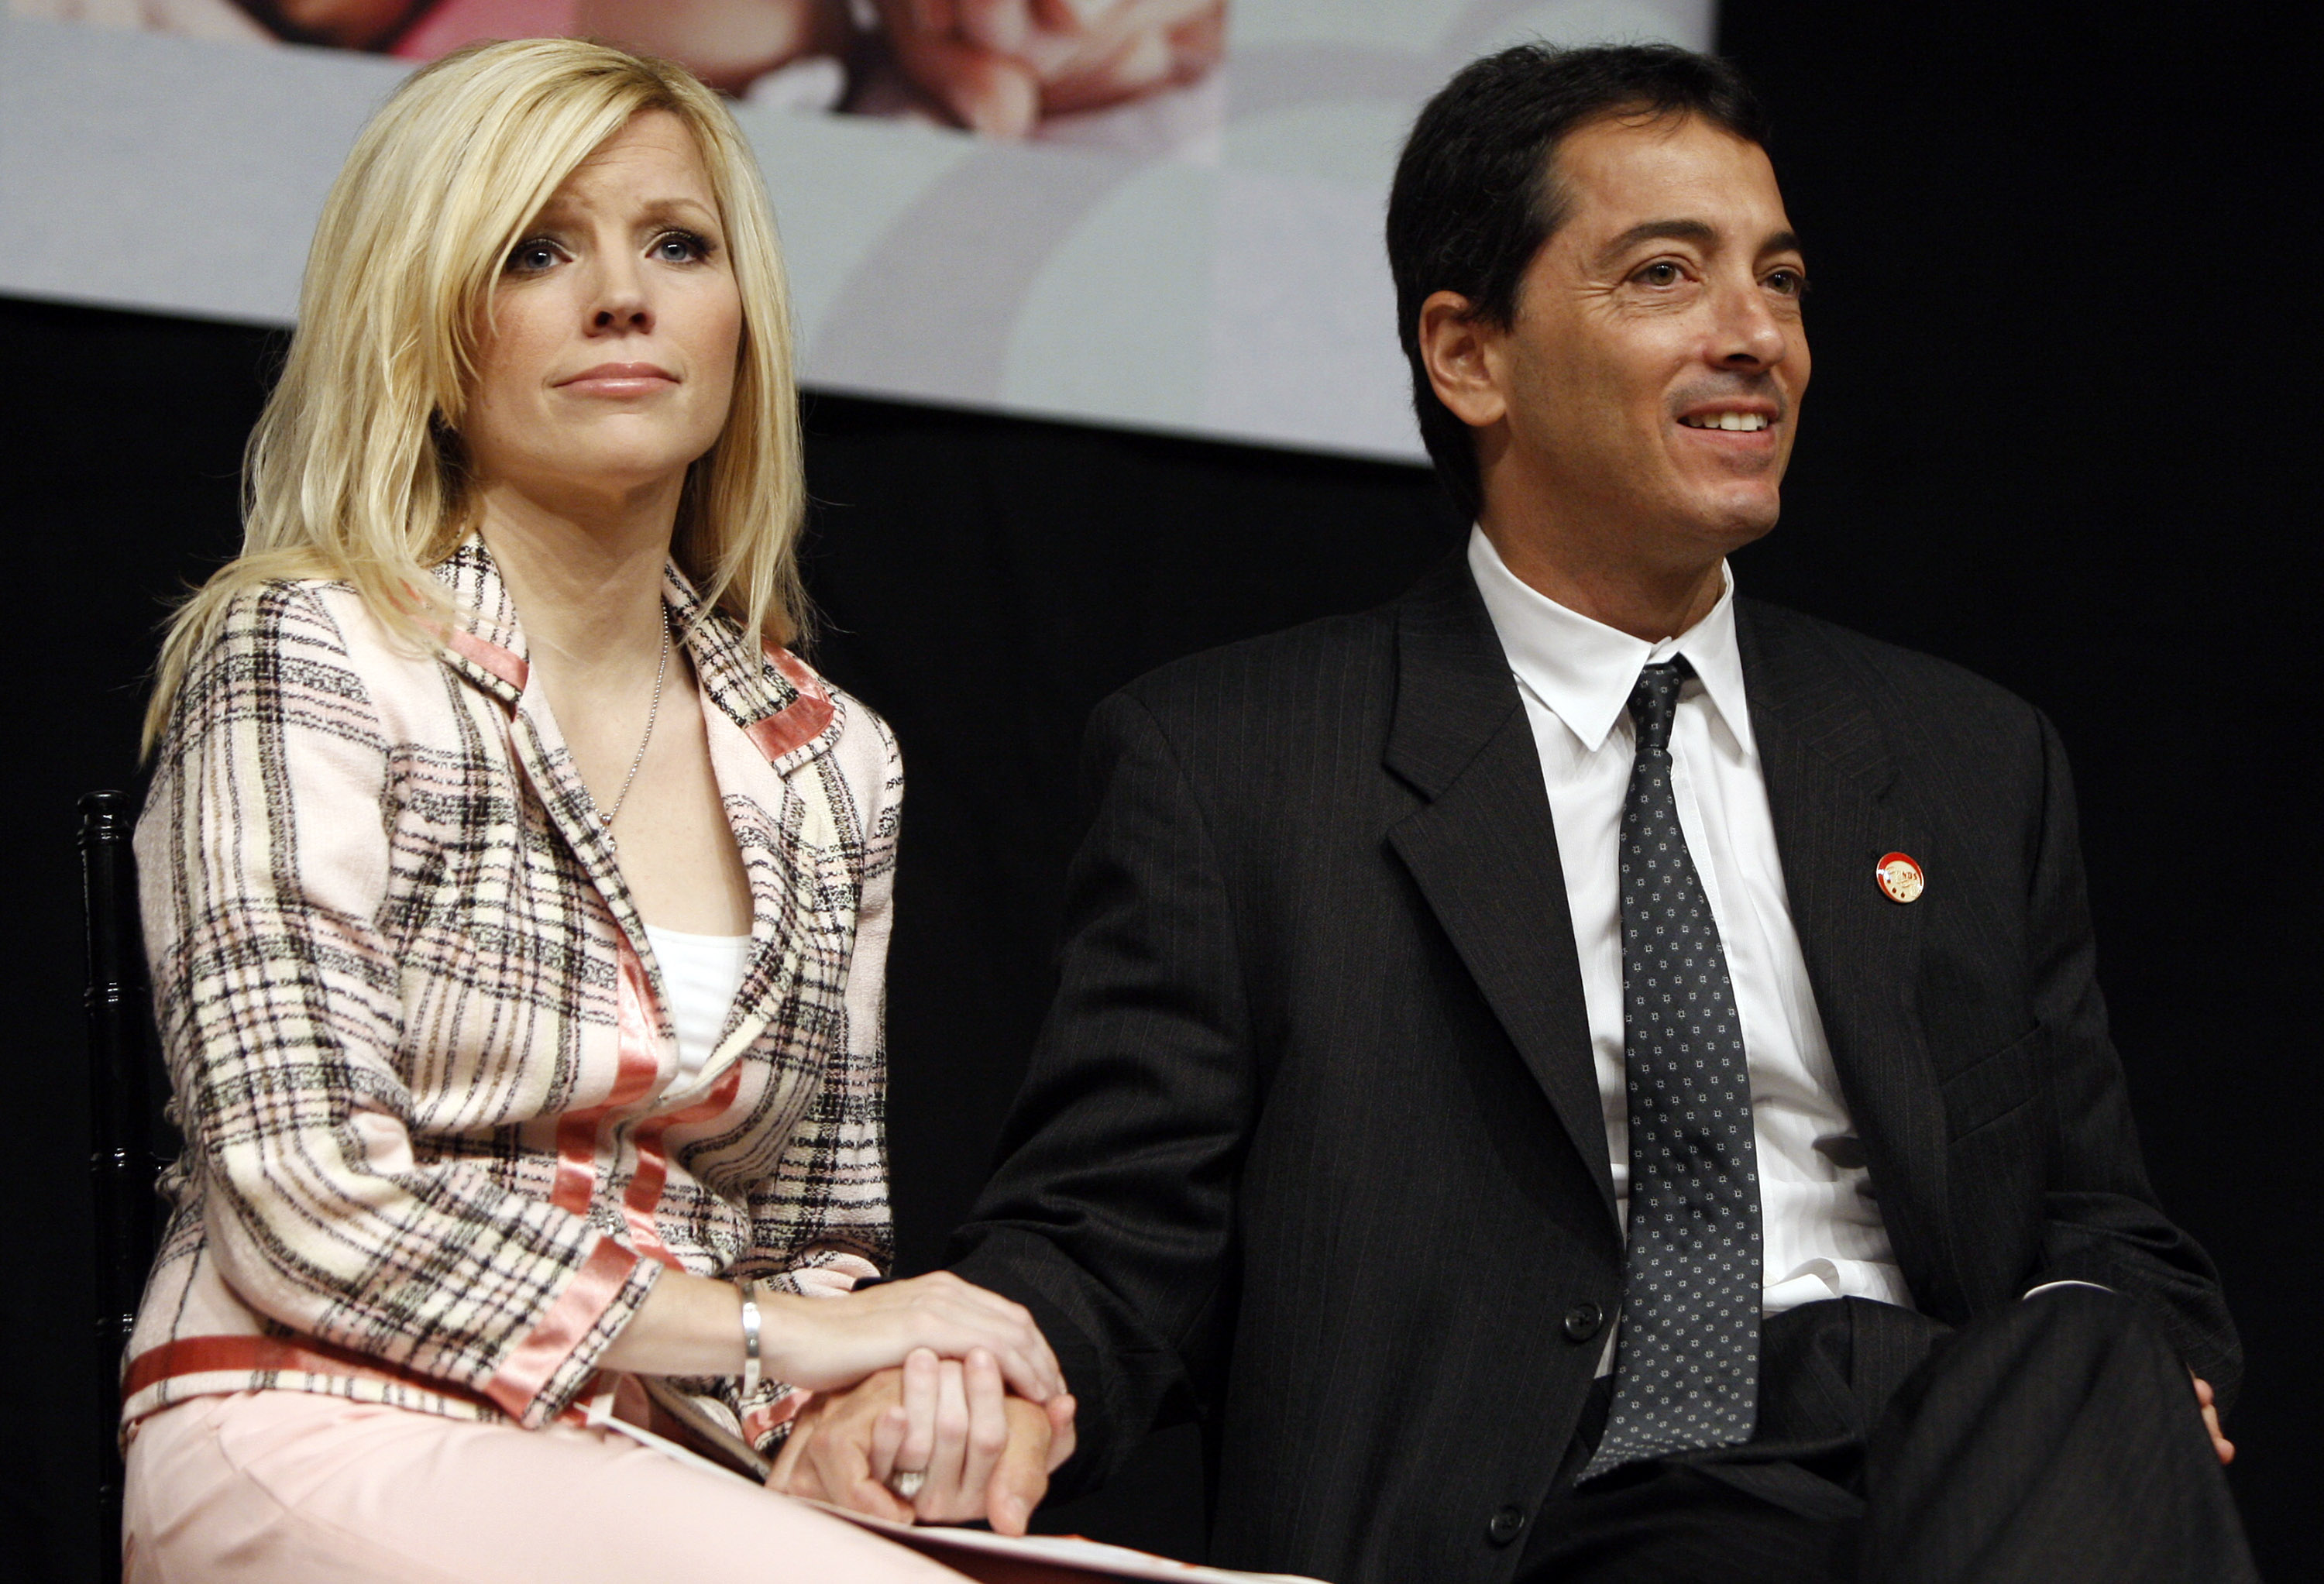 Scott Baio's Wife Renee Fires Back at Nicole Eggert's Molestation Claims